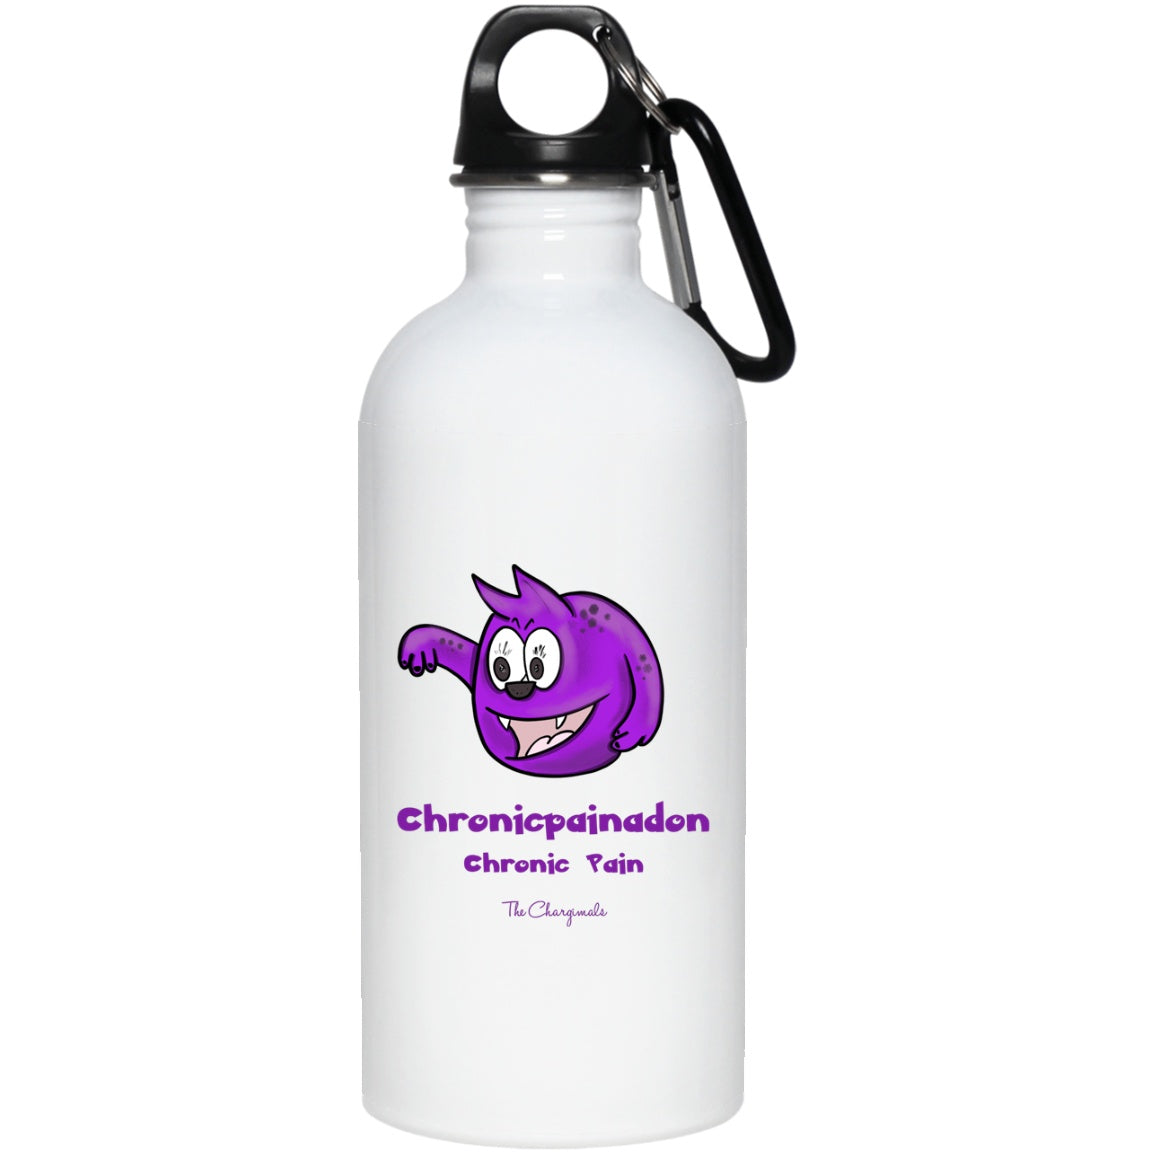 Penny the Chronic Pain Monster Mug, Travel Mug And Water Bottle - The Unchargeables